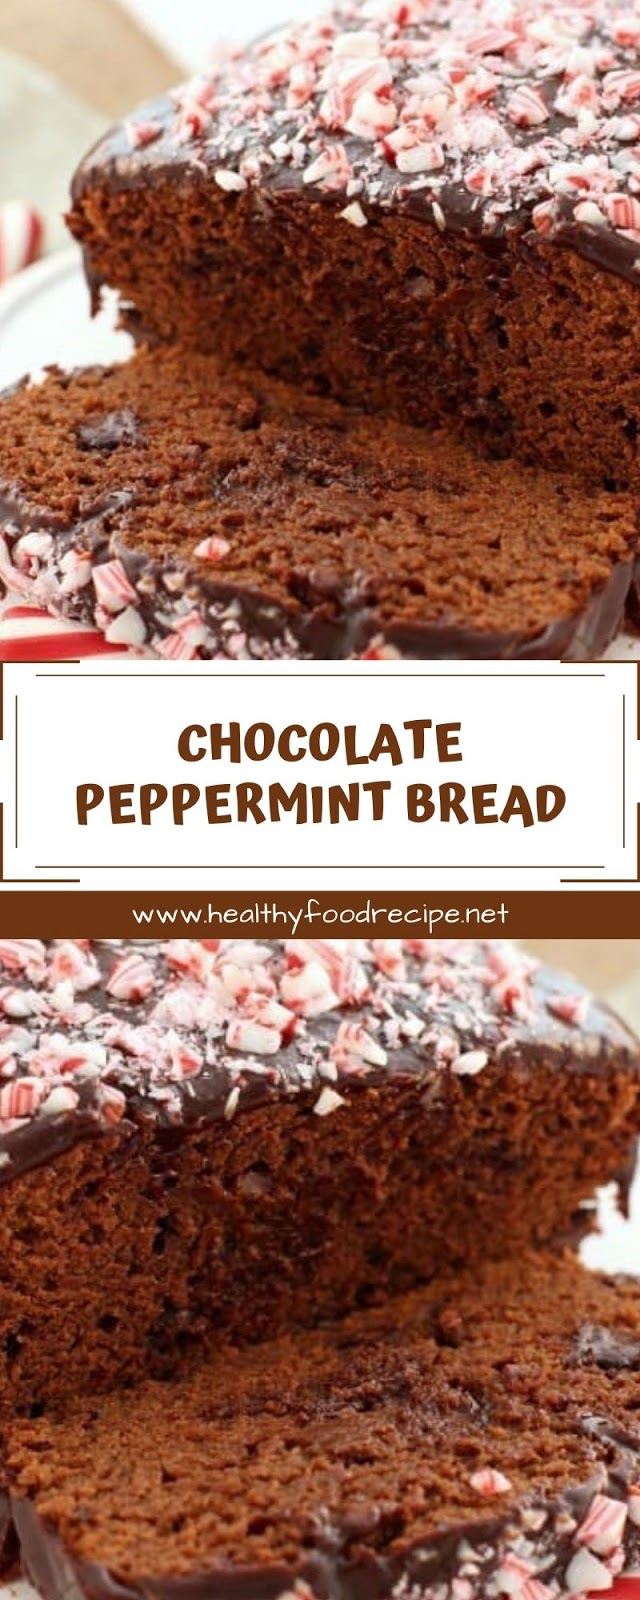 CHOCOLATE PEPPERMINT BREAD